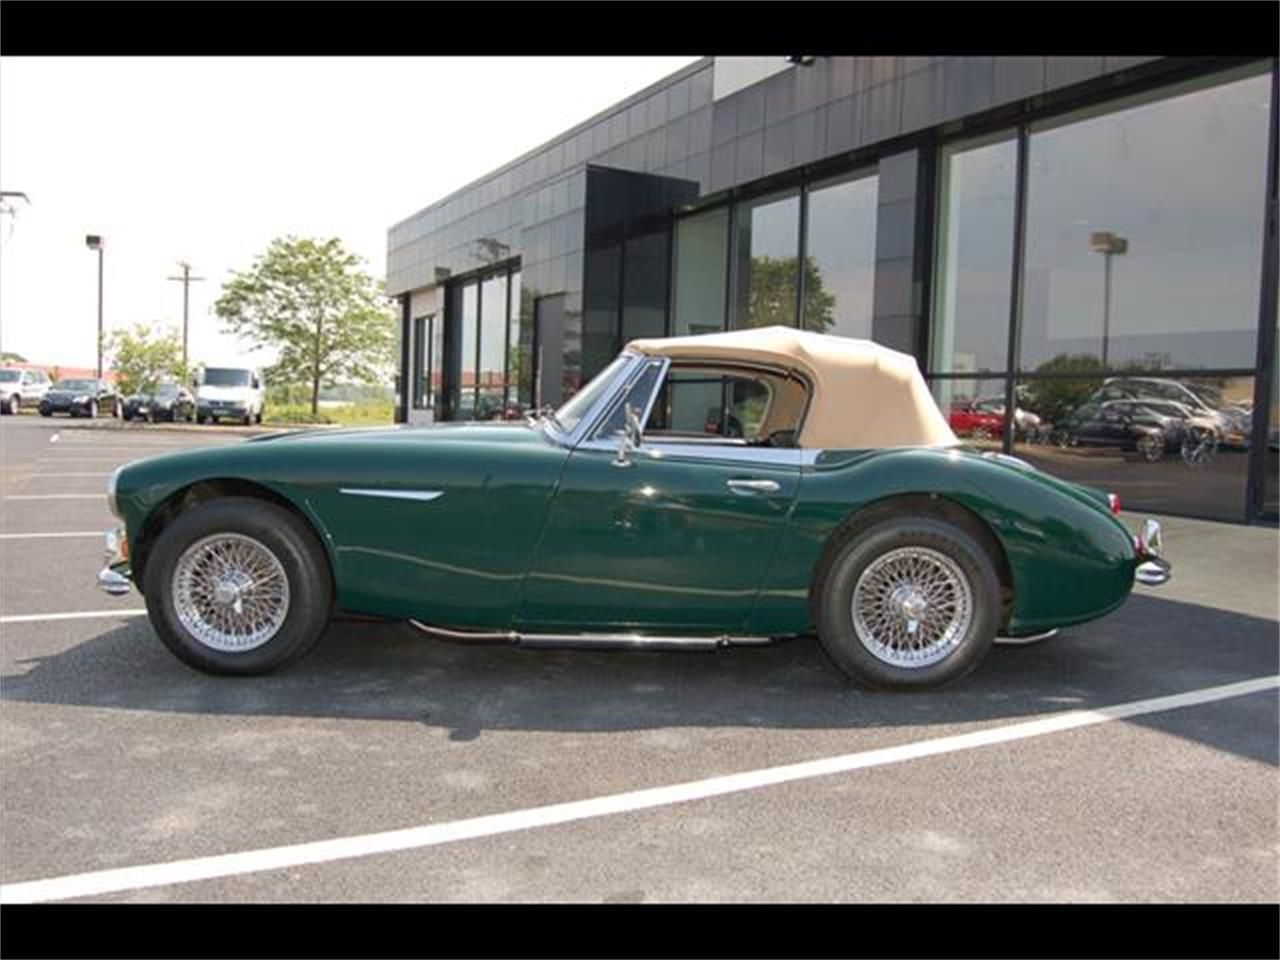 Large Picture of Classic '67 Austin-Healey 3000 Mark III located in Marysville Ohio - LRXT